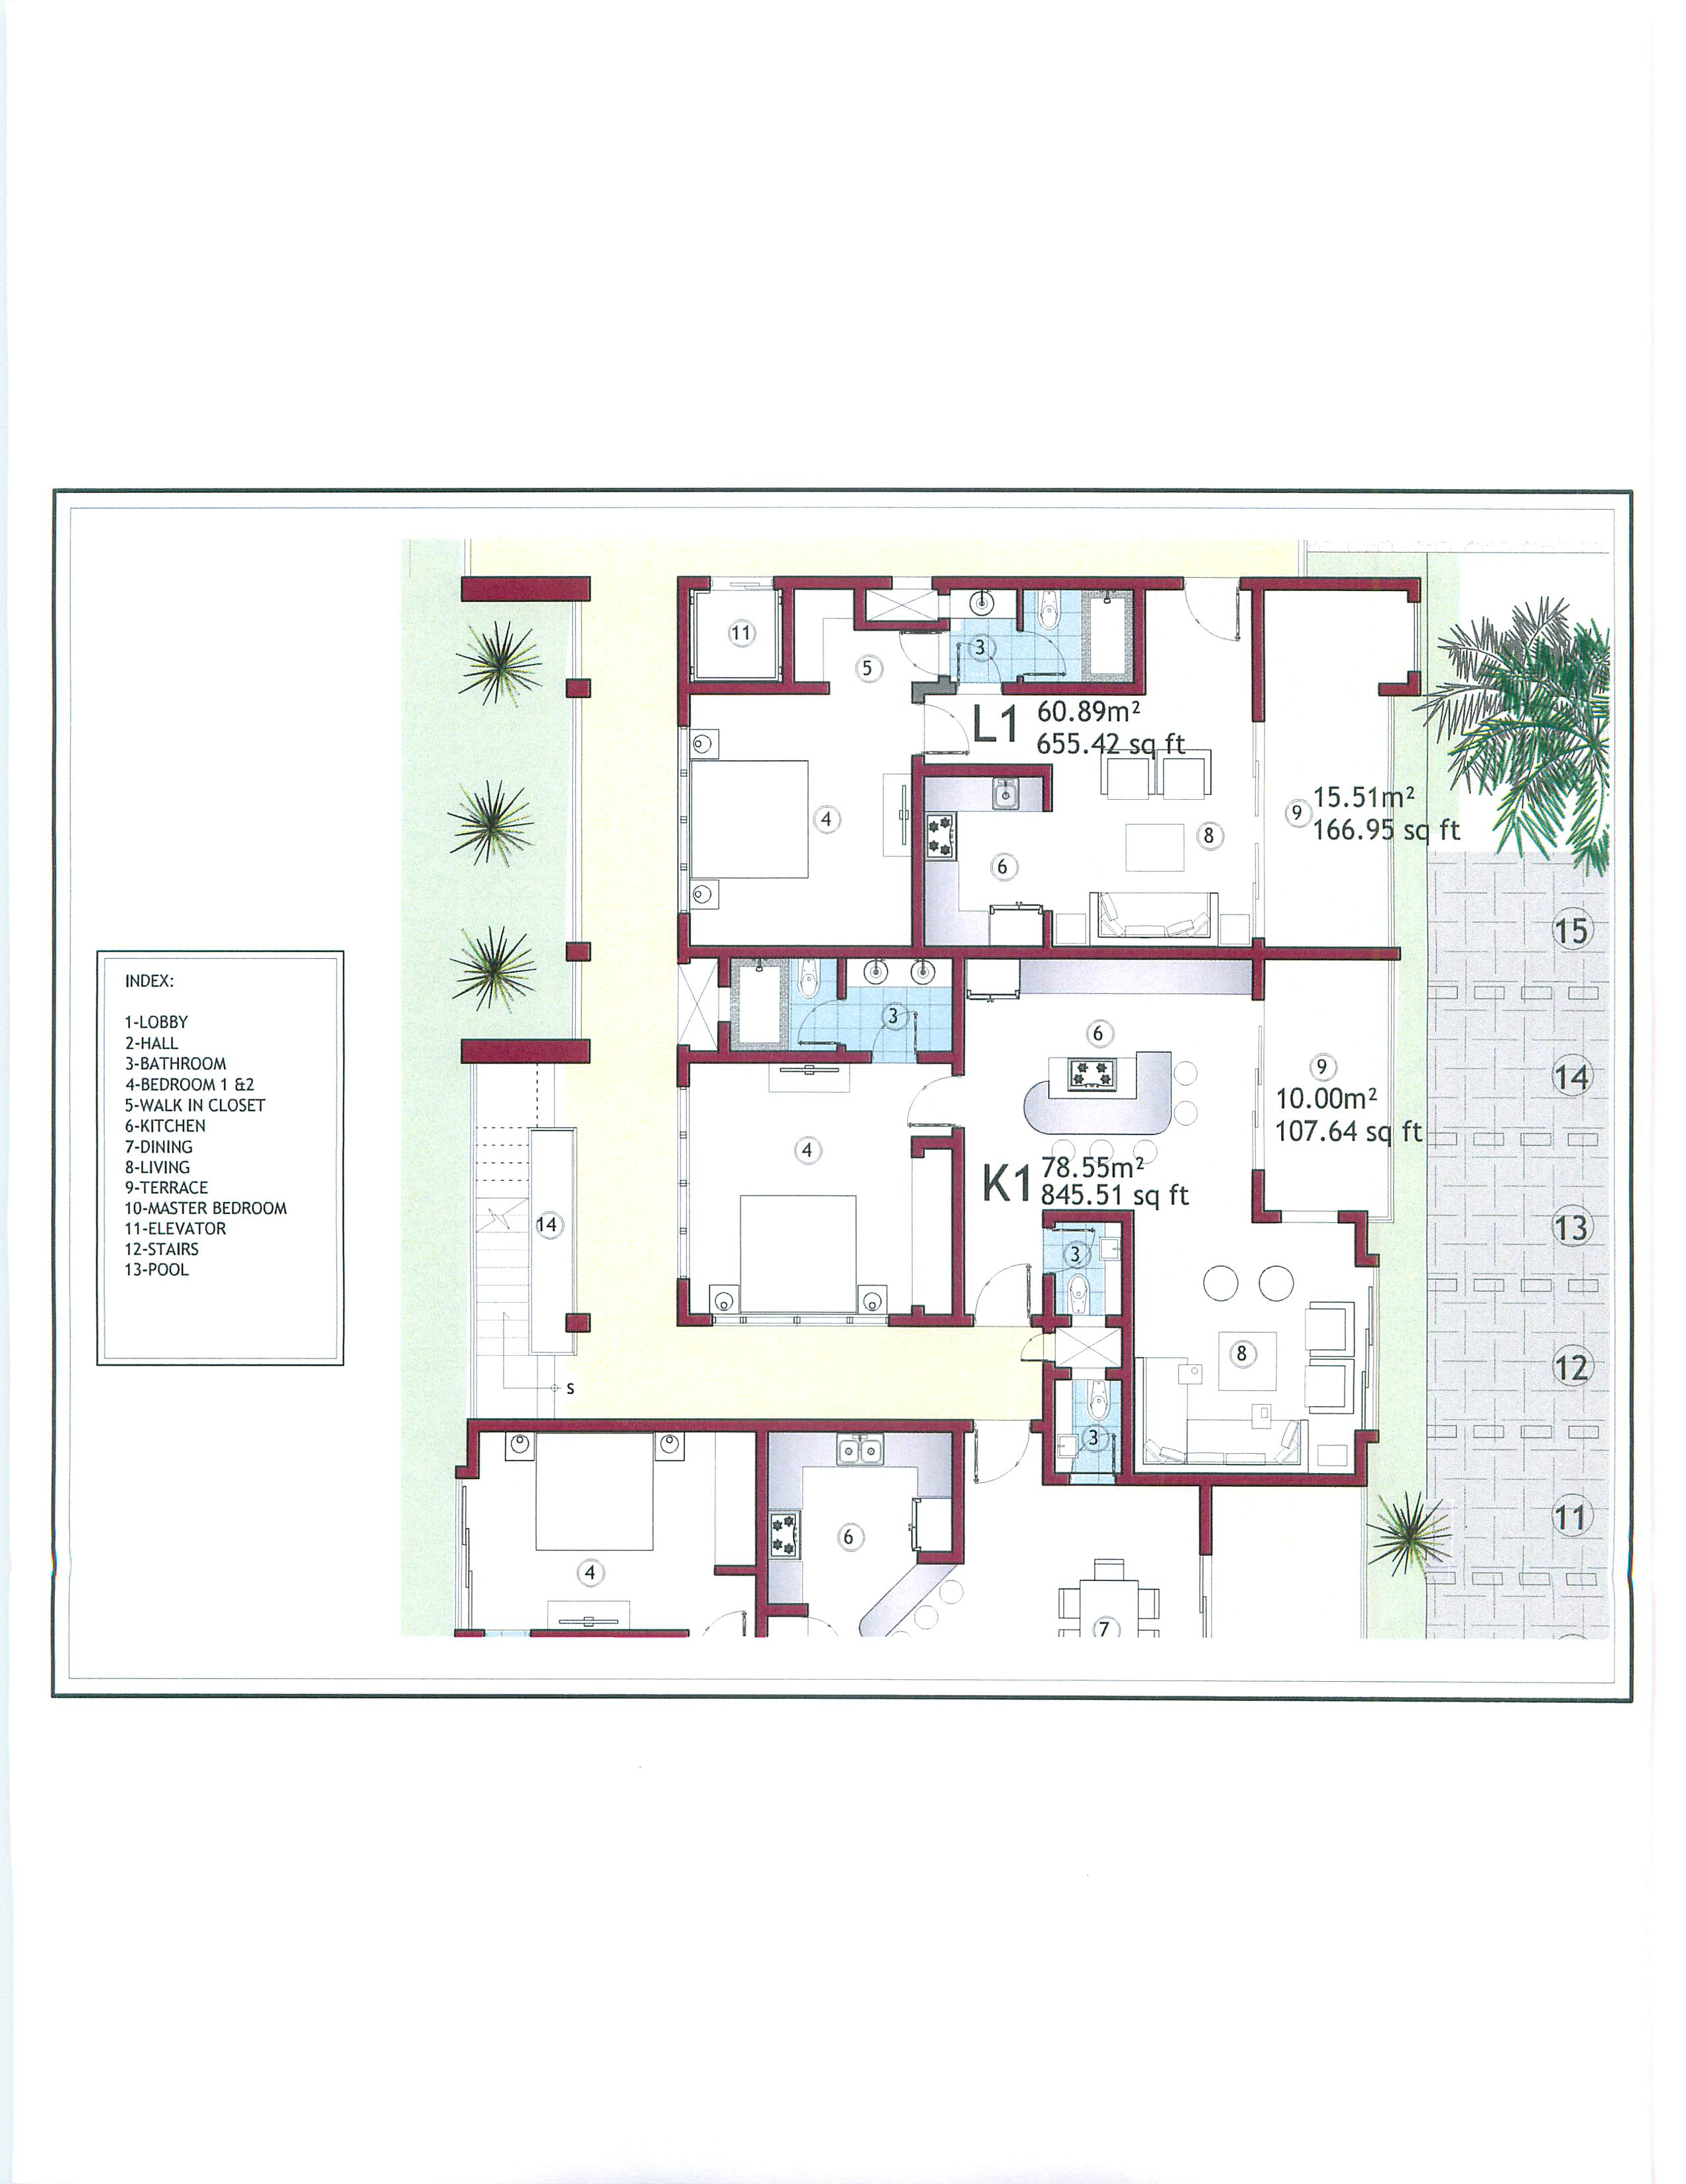 Grand beach phase 2 floor plans thecarpets co for Grand design floor plans